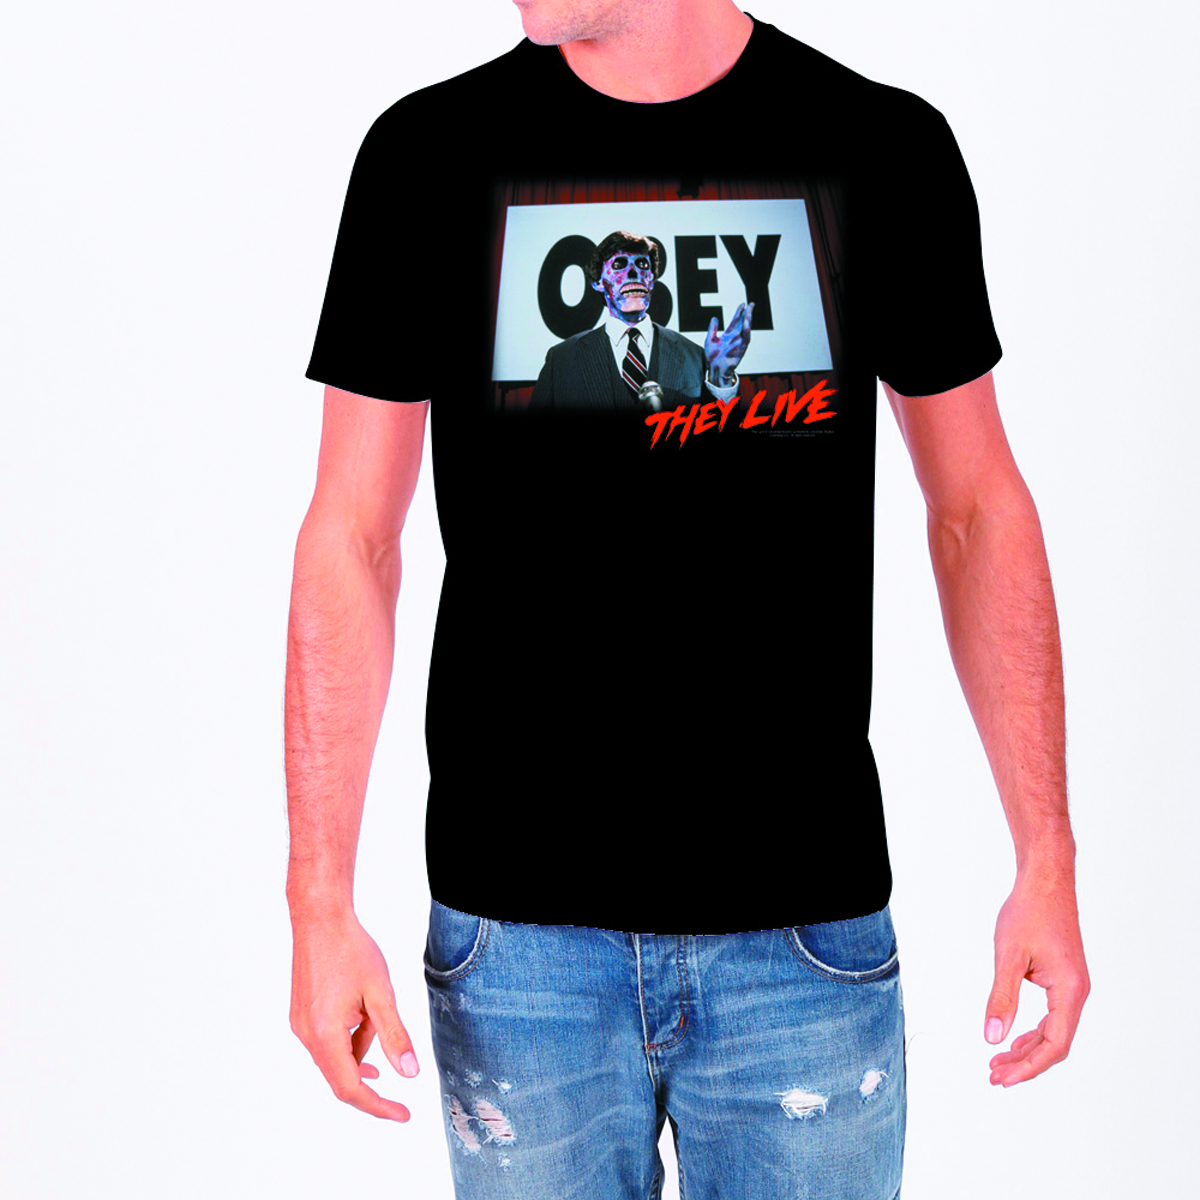 THEY LIVE OBEY BLK T/S MED